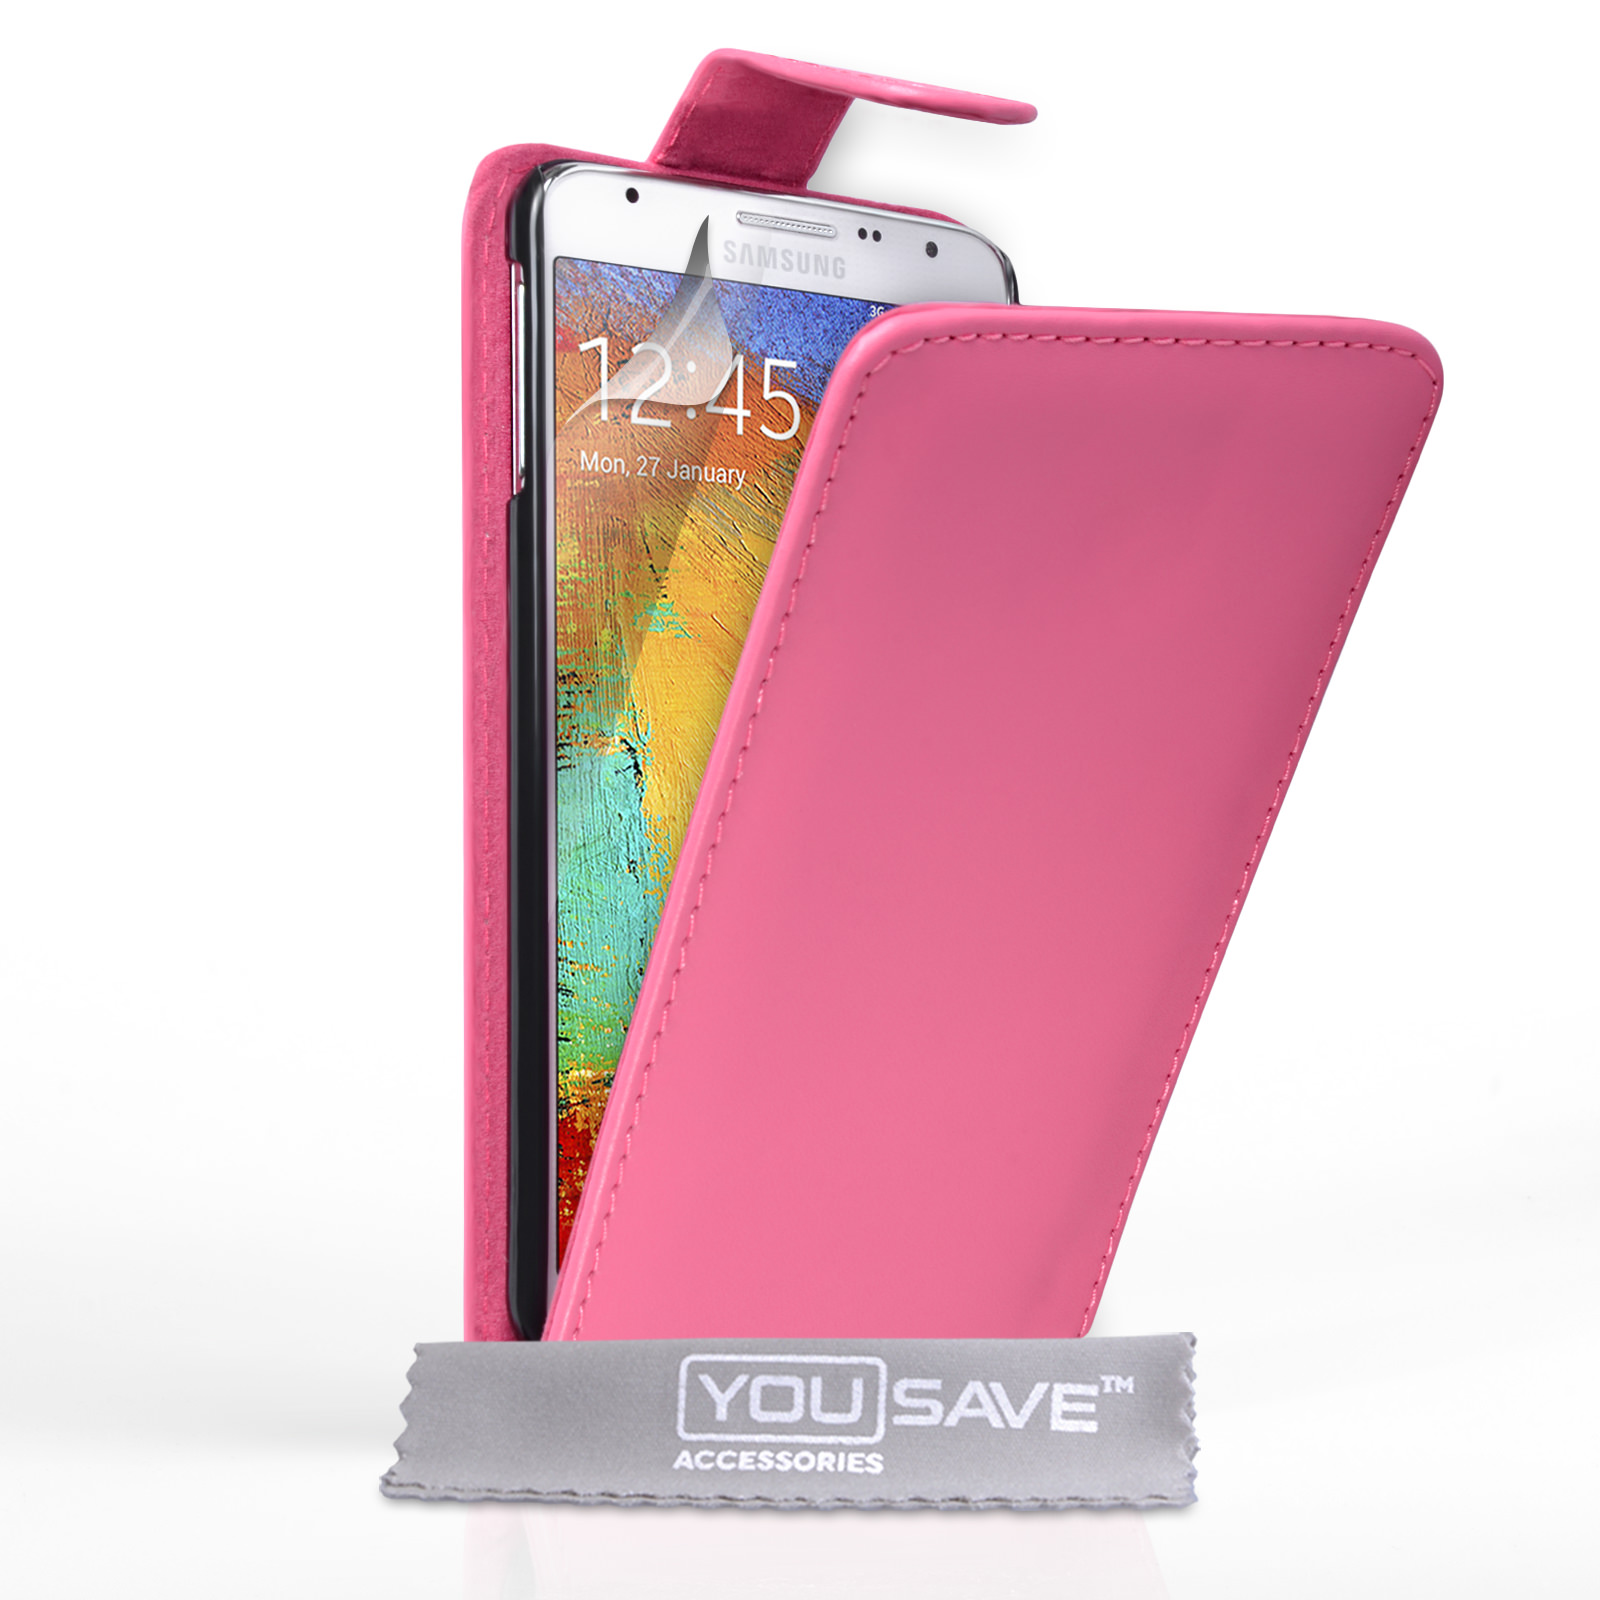 YouSave Samsung Galaxy Note 3 Neo Leather-Effect Flip Case - Hot Pink